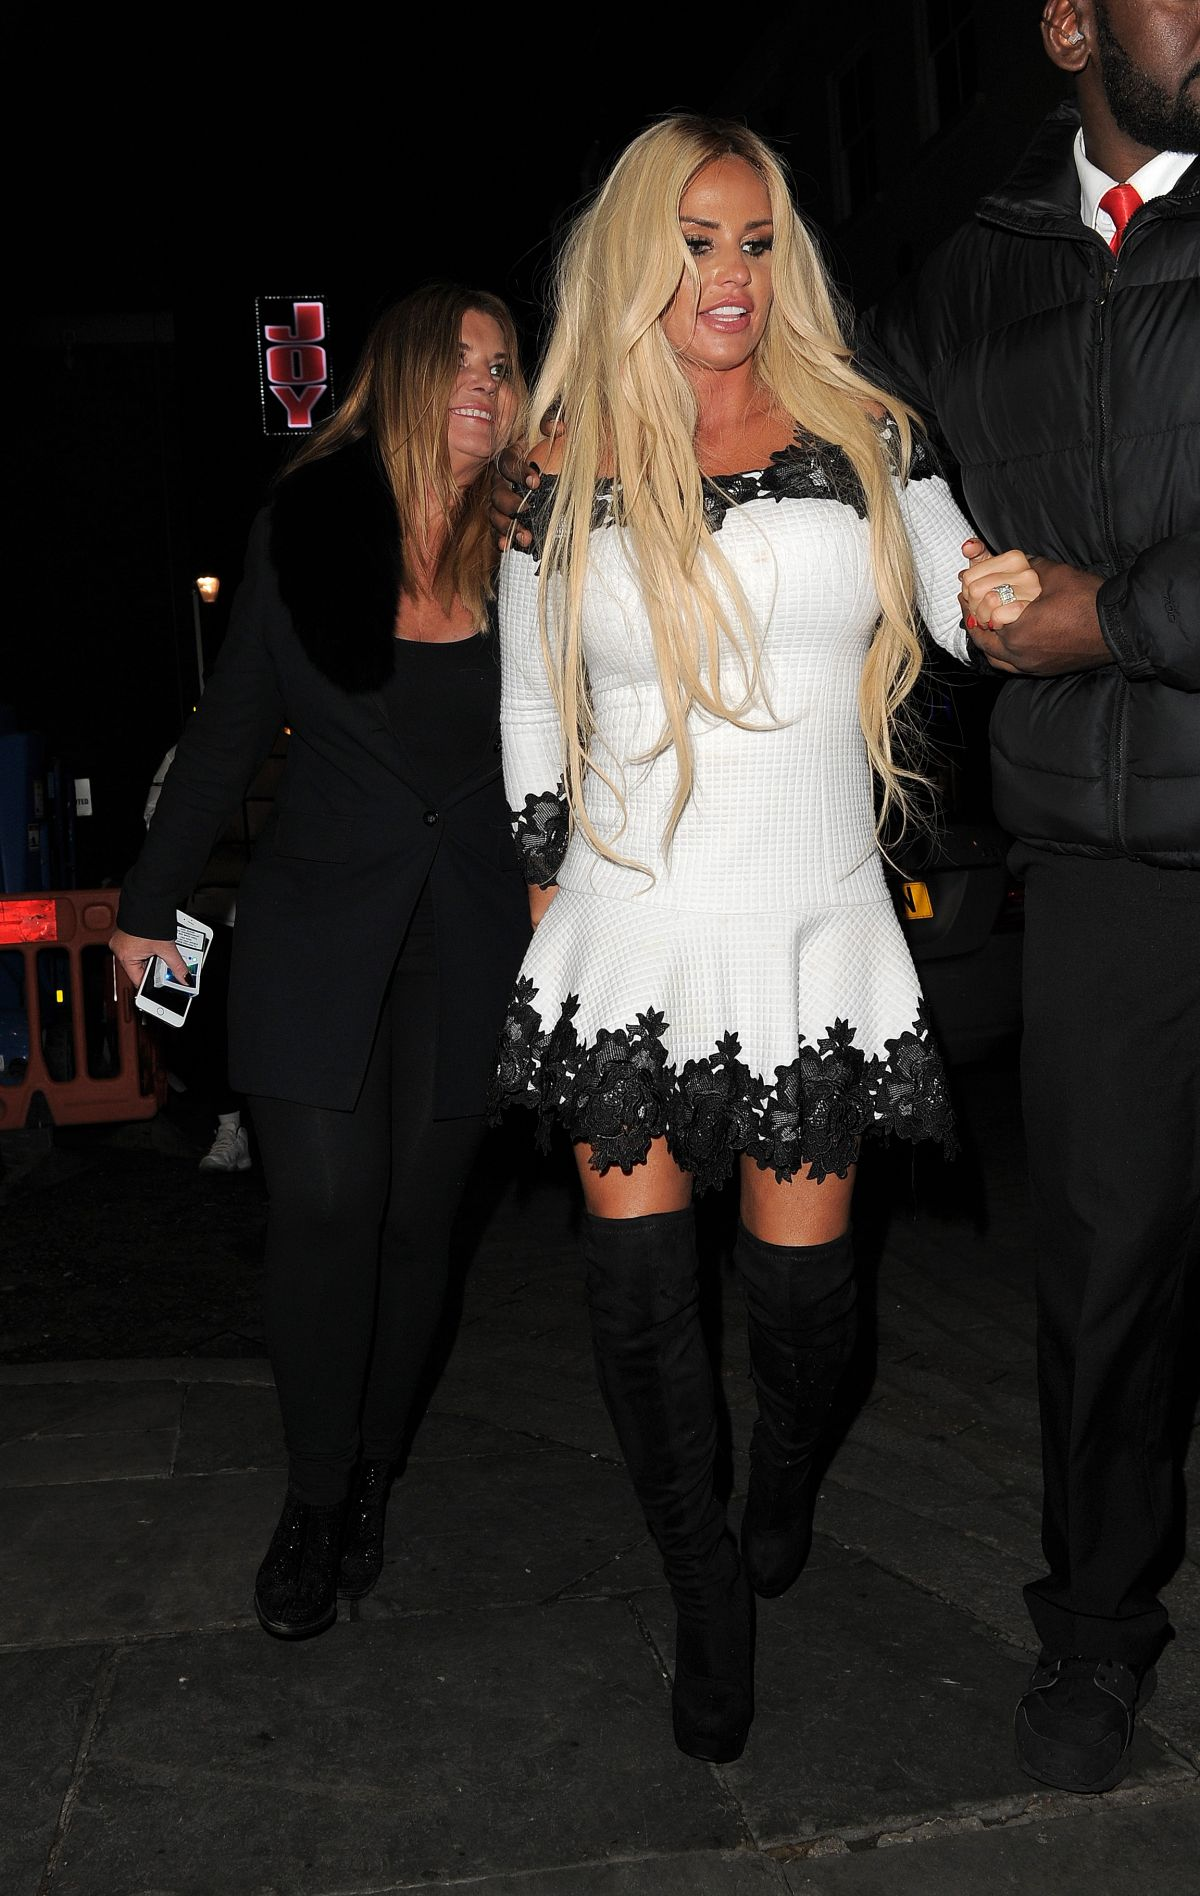 Katie Price Out for the evening in London   katie-price-out-for-the-evening-in-london_14